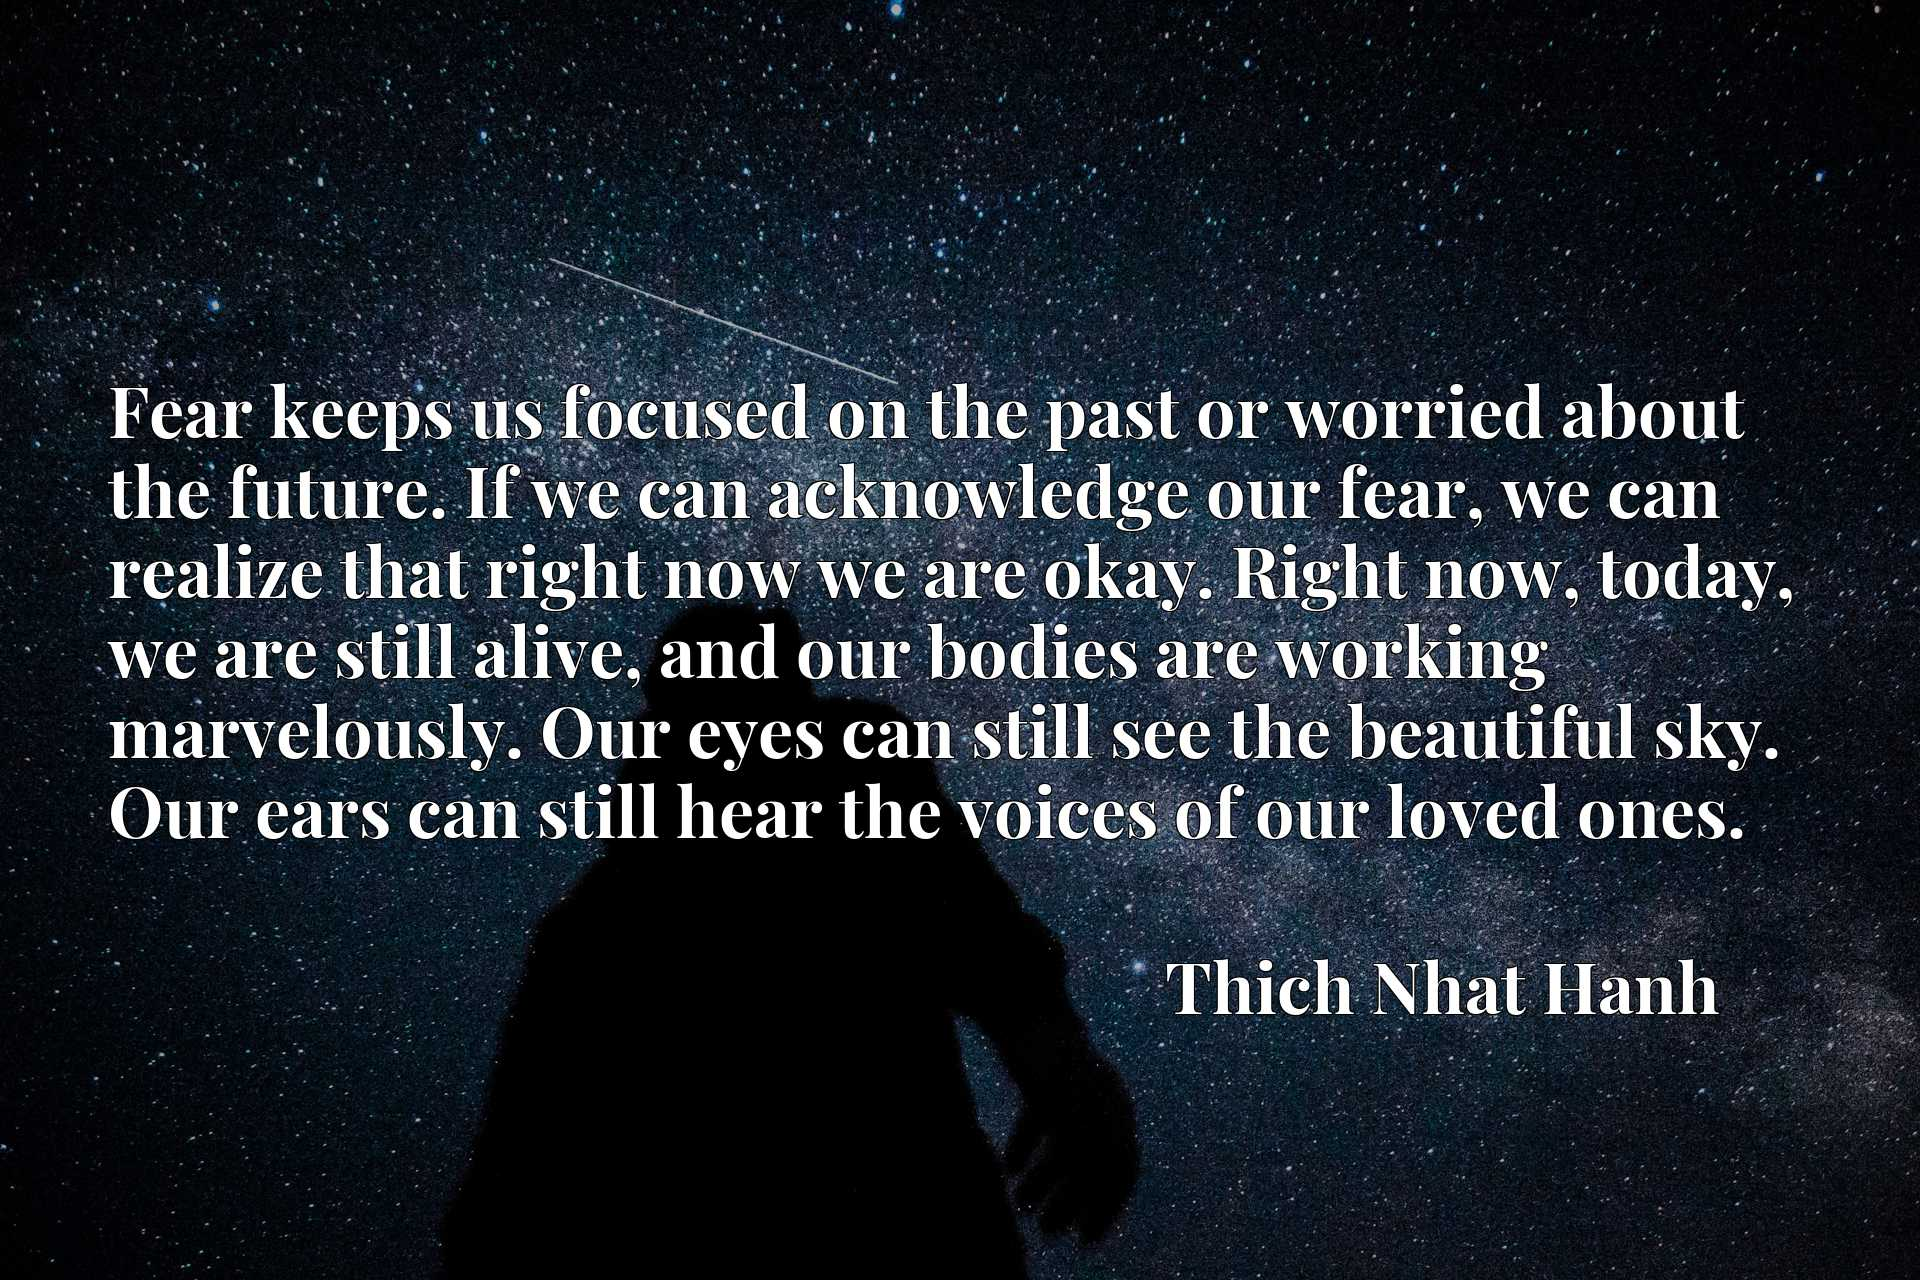 Fear keeps us focused on the past or worried about the future. If we can acknowledge our fear, we can realize that right now we are okay. Right now, today, we are still alive, and our bodies are working marvelously. Our eyes can still see the beautiful sky. Our ears can still hear the voices of our loved ones.